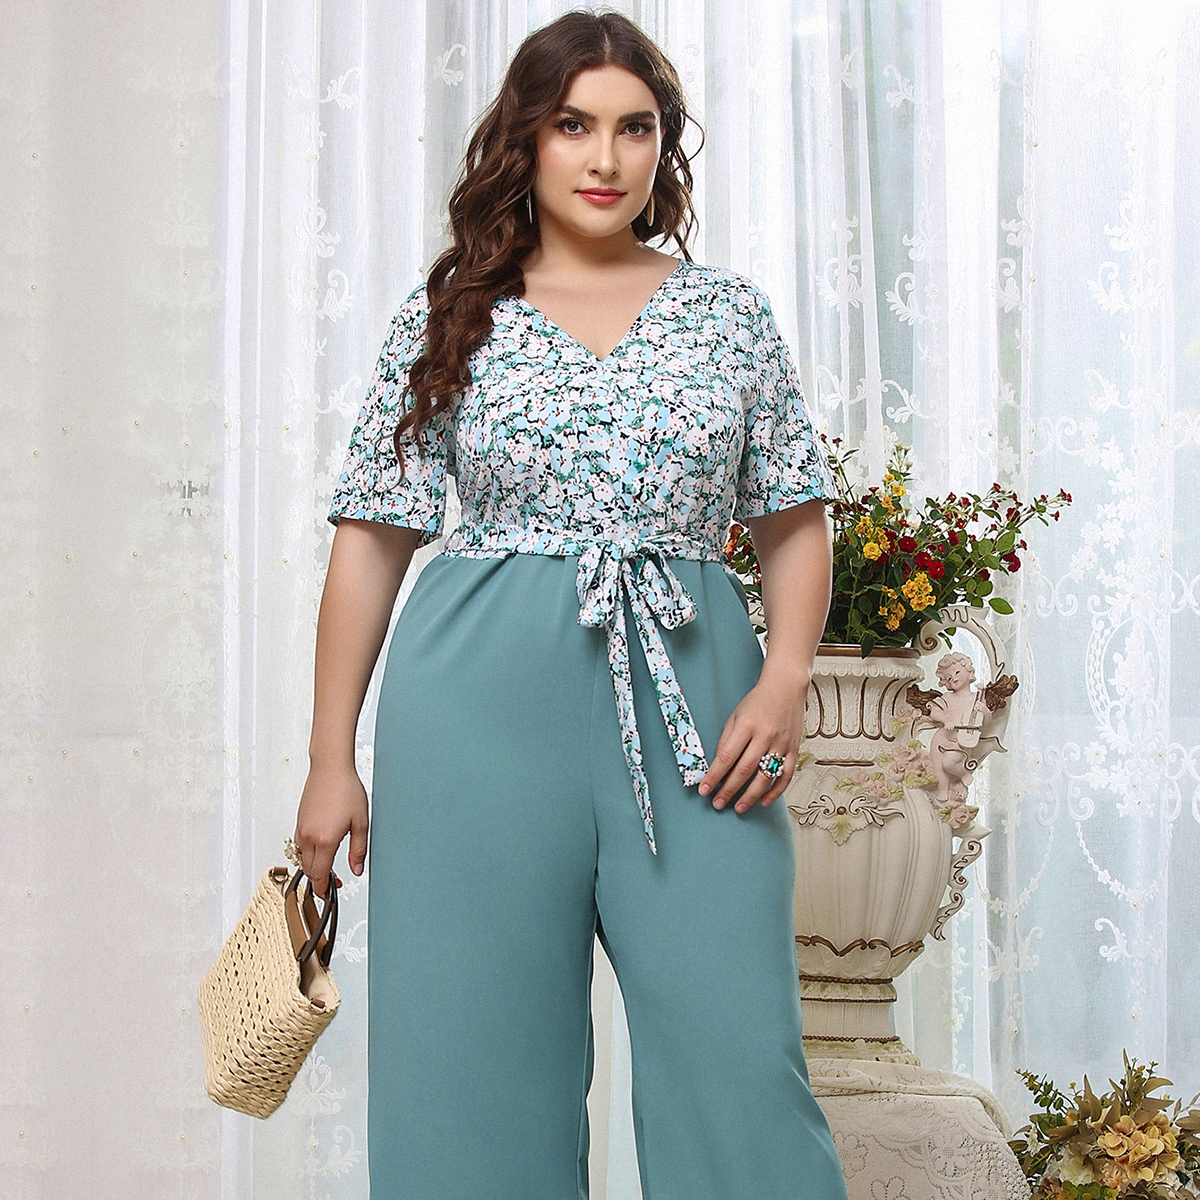 Plus Floral Print 2 In 1 Jumpsuit, SHEIN  - buy with discount